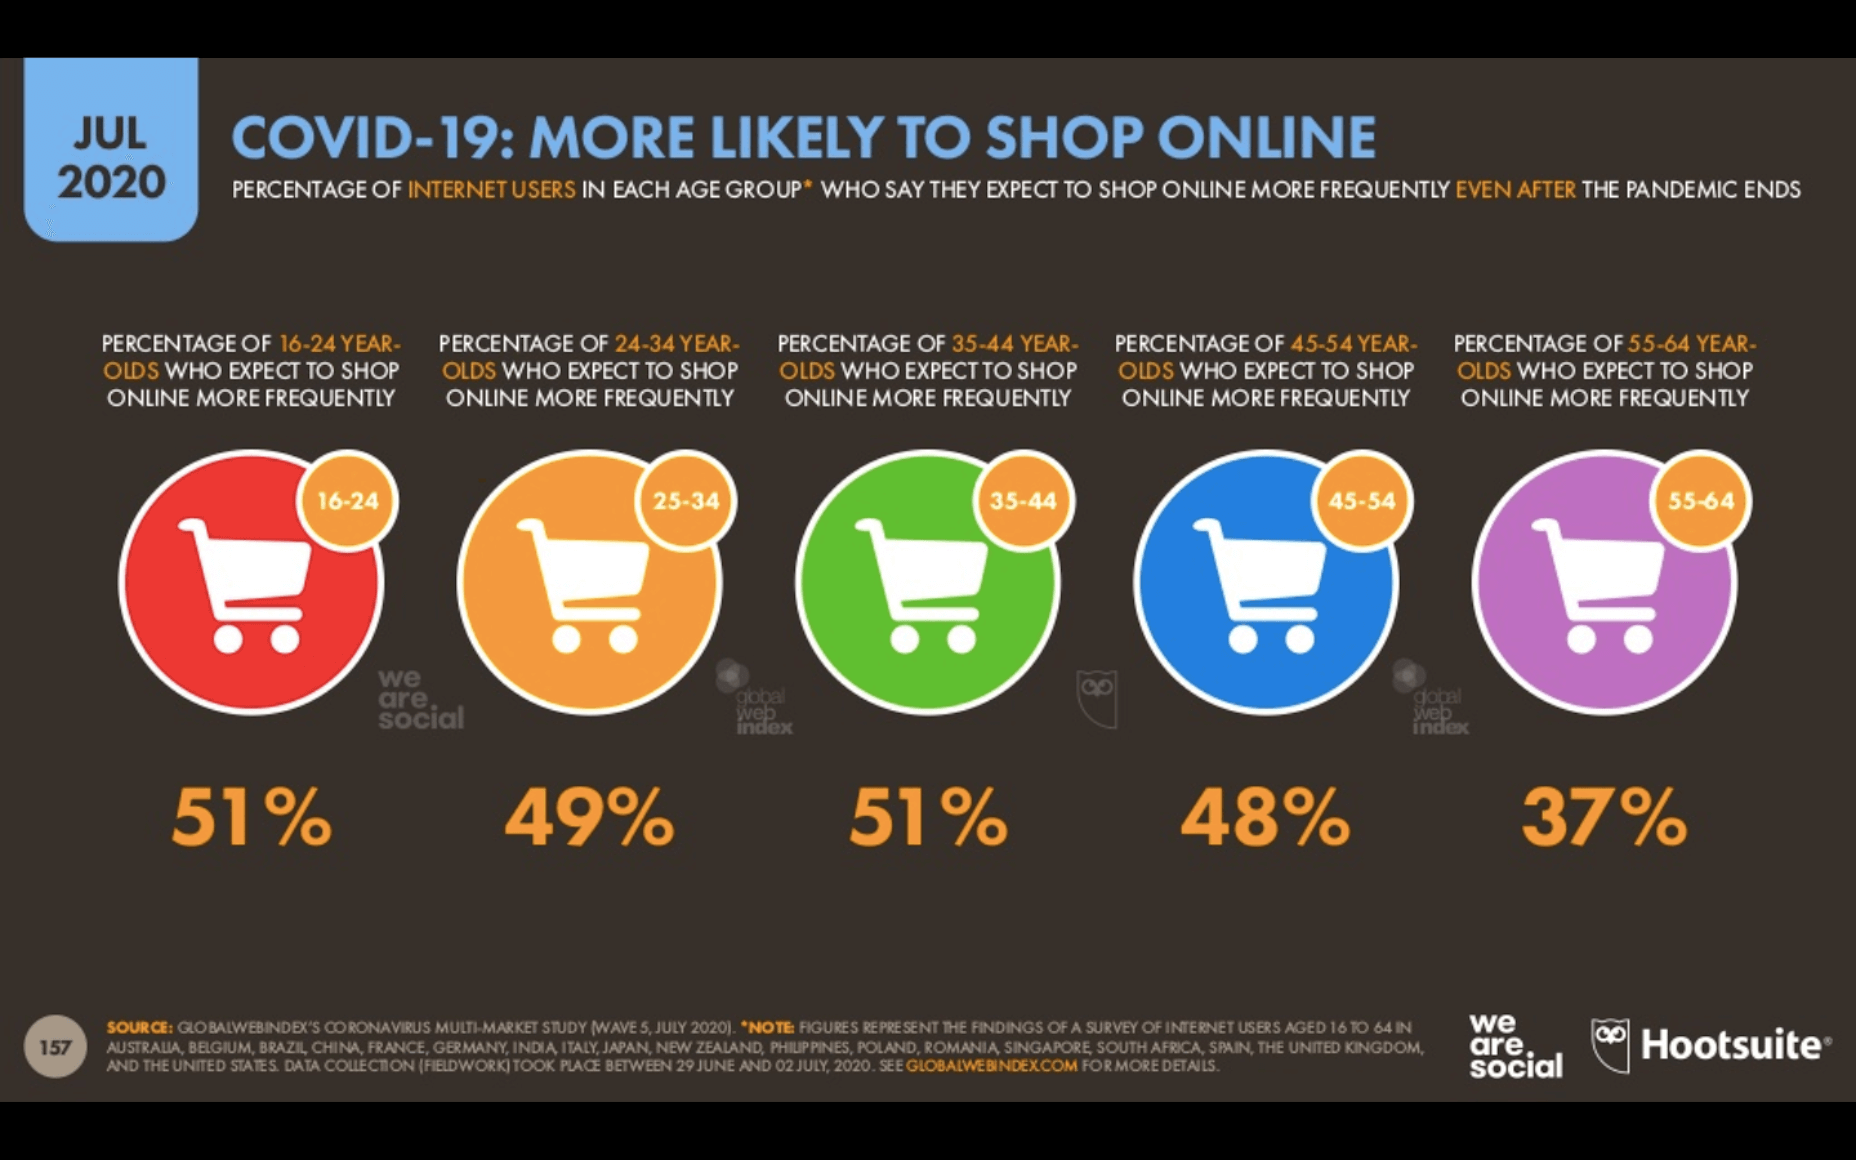 Digital 2020 - consumers more likely to shop online after COVID-19 - statistics